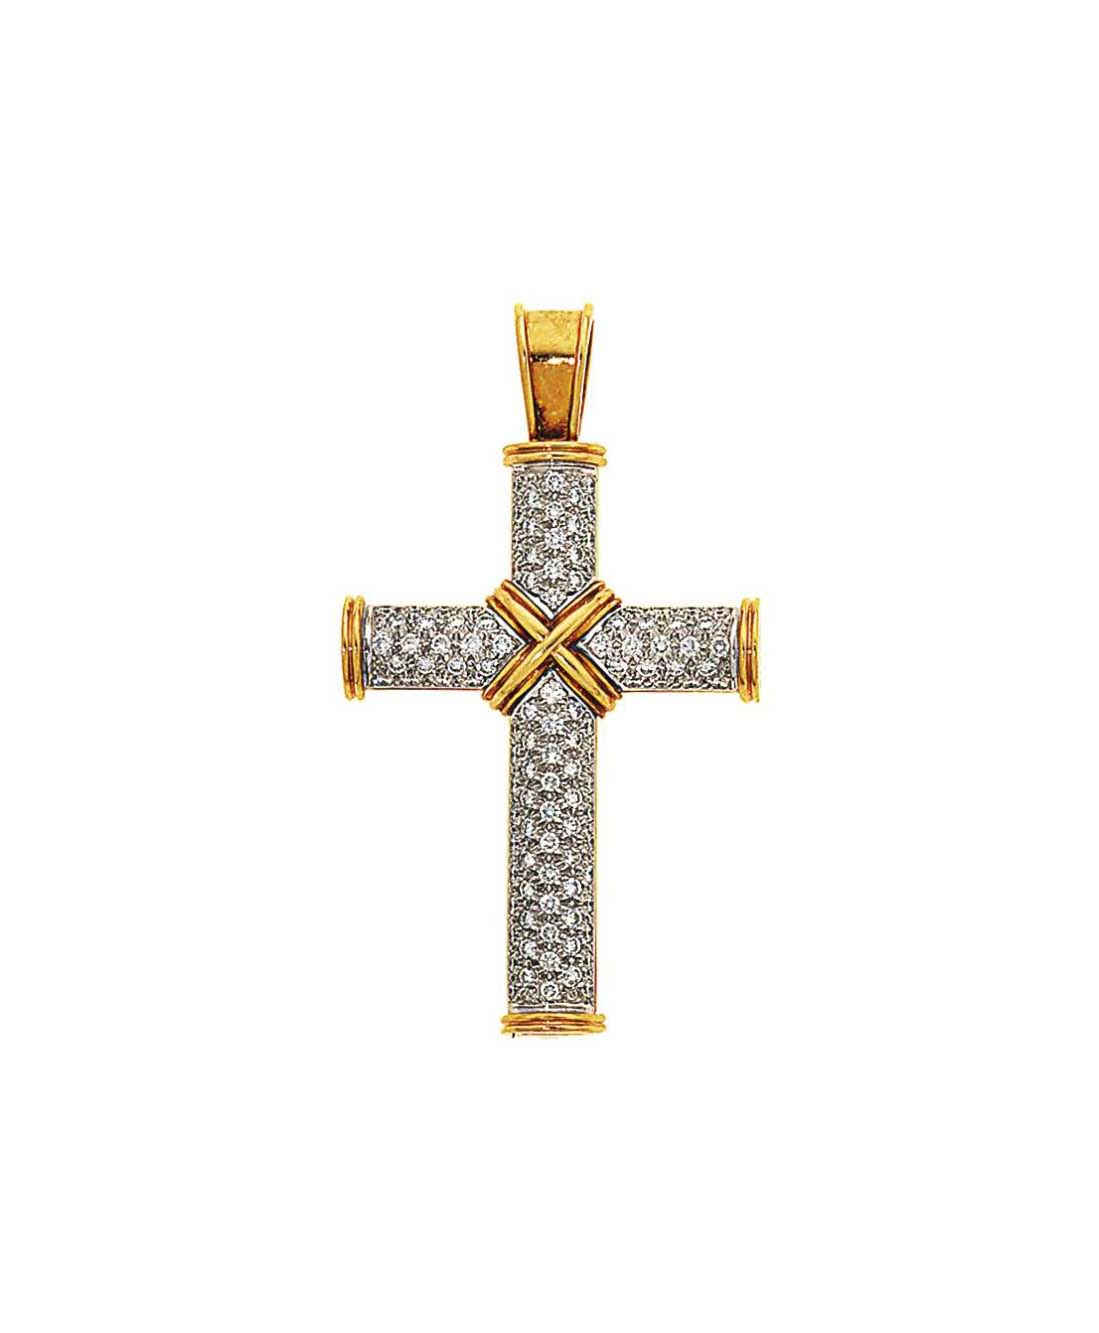 A diamond-set gold cross pendant, by Theo Fennell